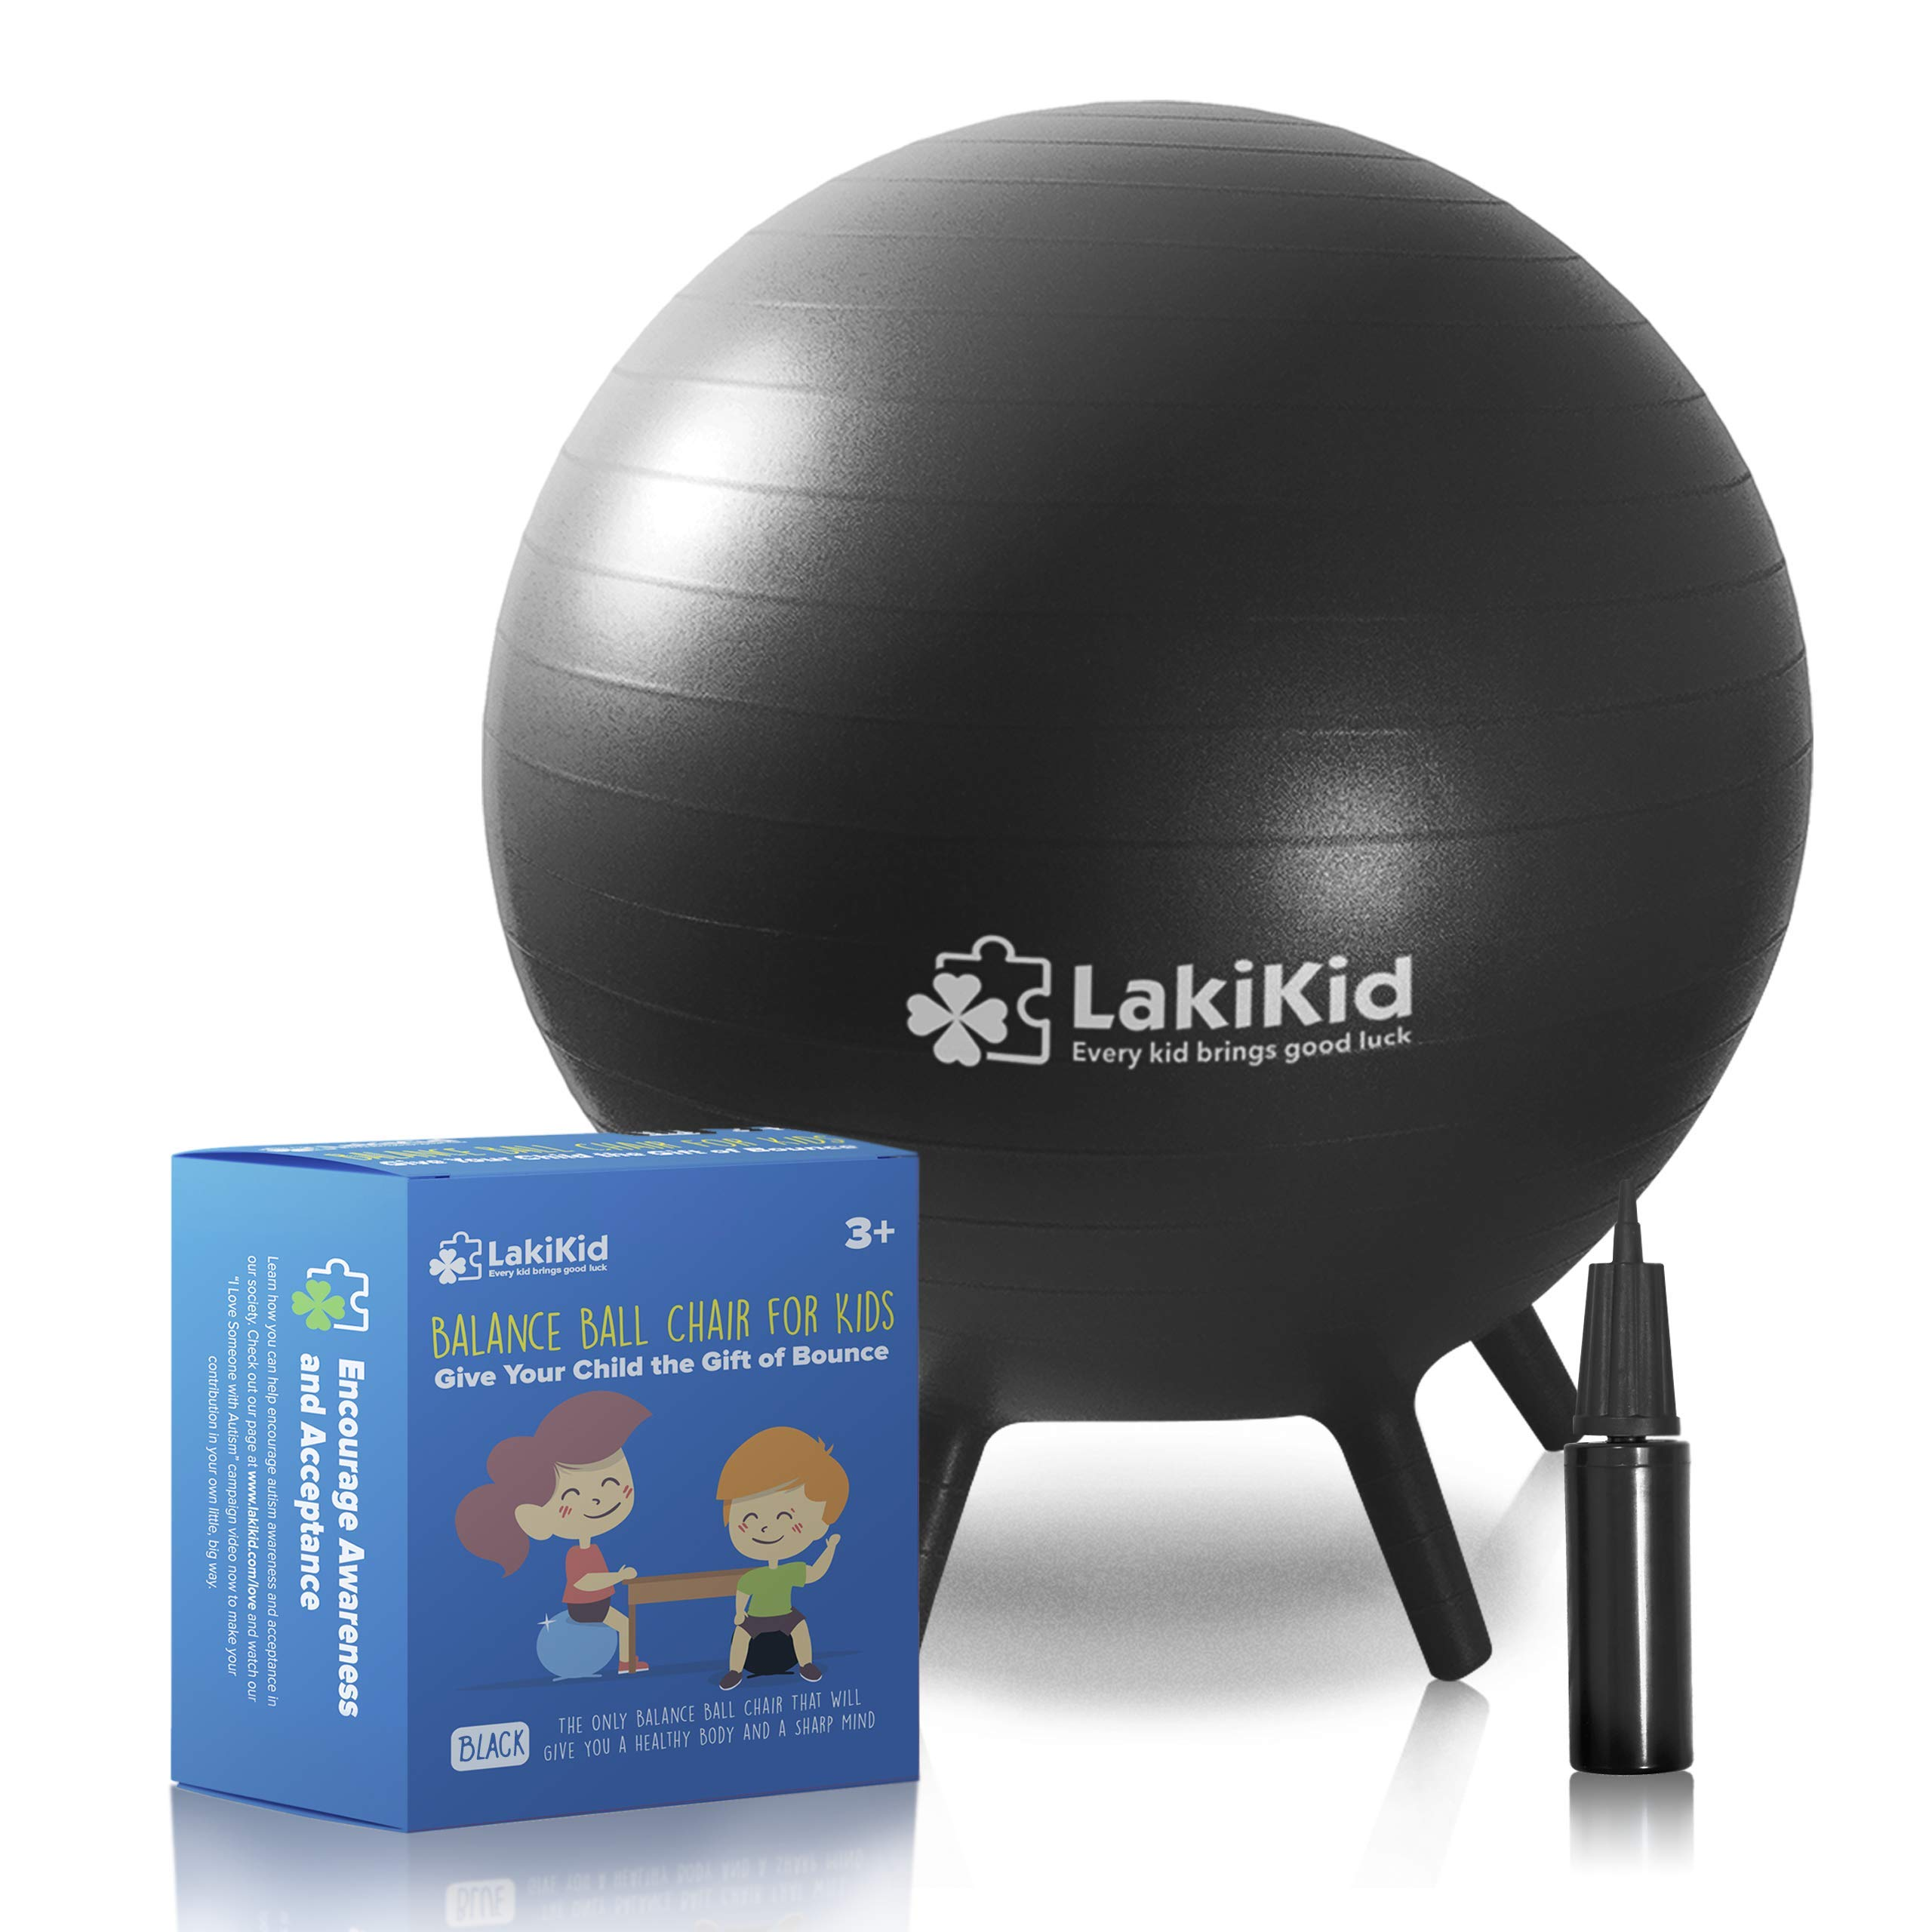 LakiKid Balance Ball Chairs for Kids - Perfect Stability Balls for Flexible Seating Classroom - Fun Alternative Seating for Students (Kids (45cm), Black) by LakiKid